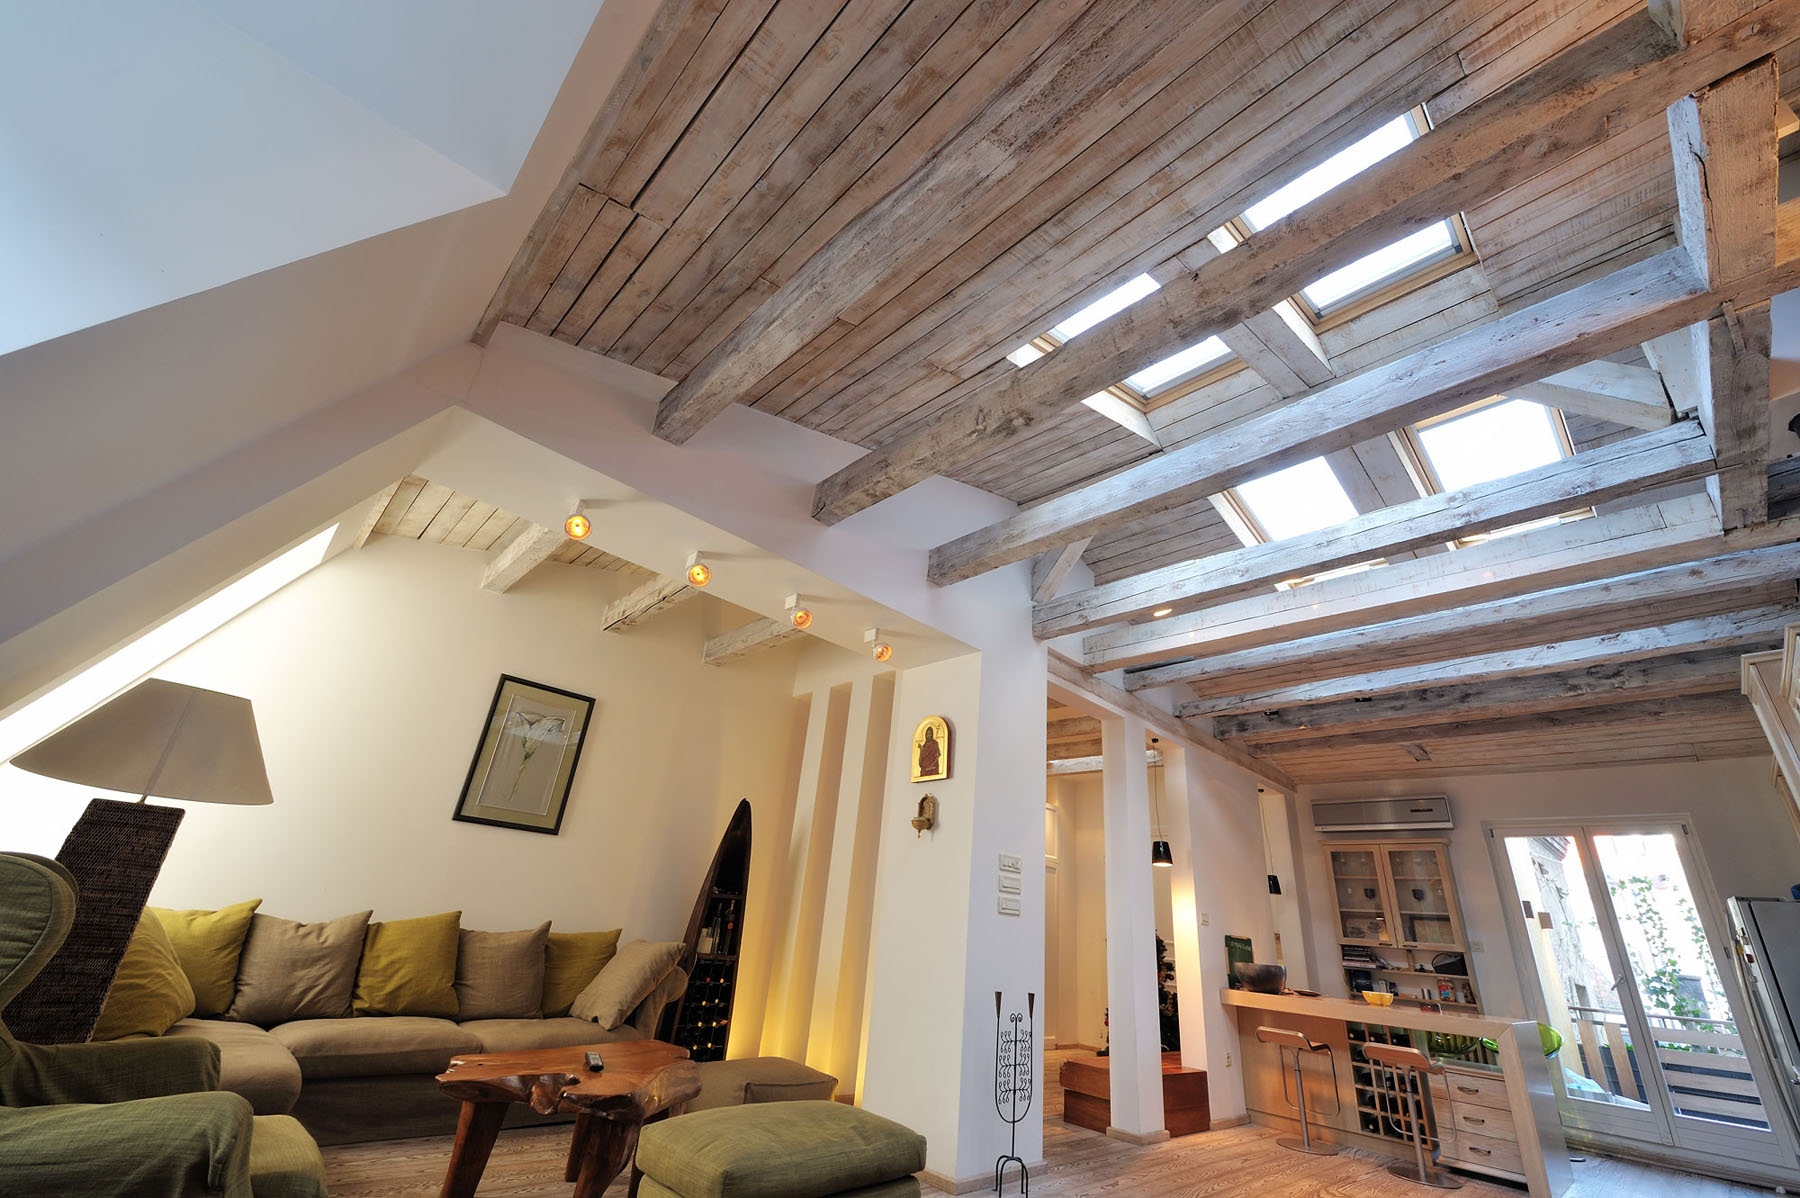 Attic Apartment with Woodbeams